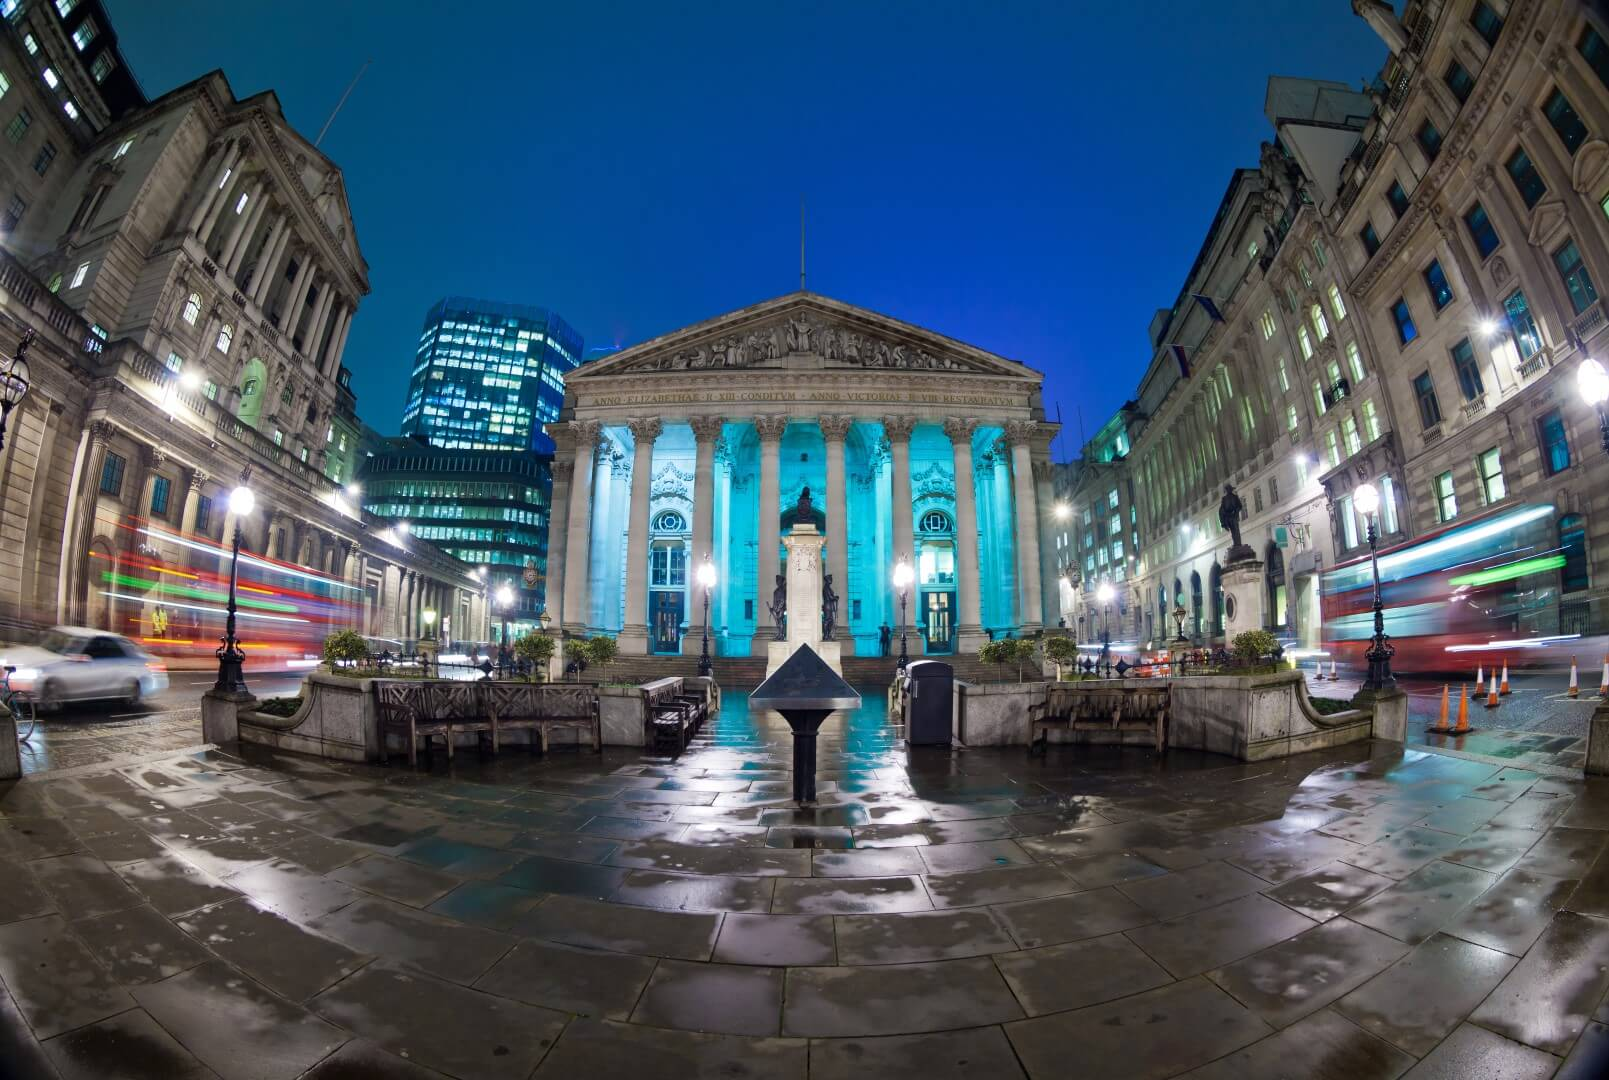 the royal exchange and the bank of england